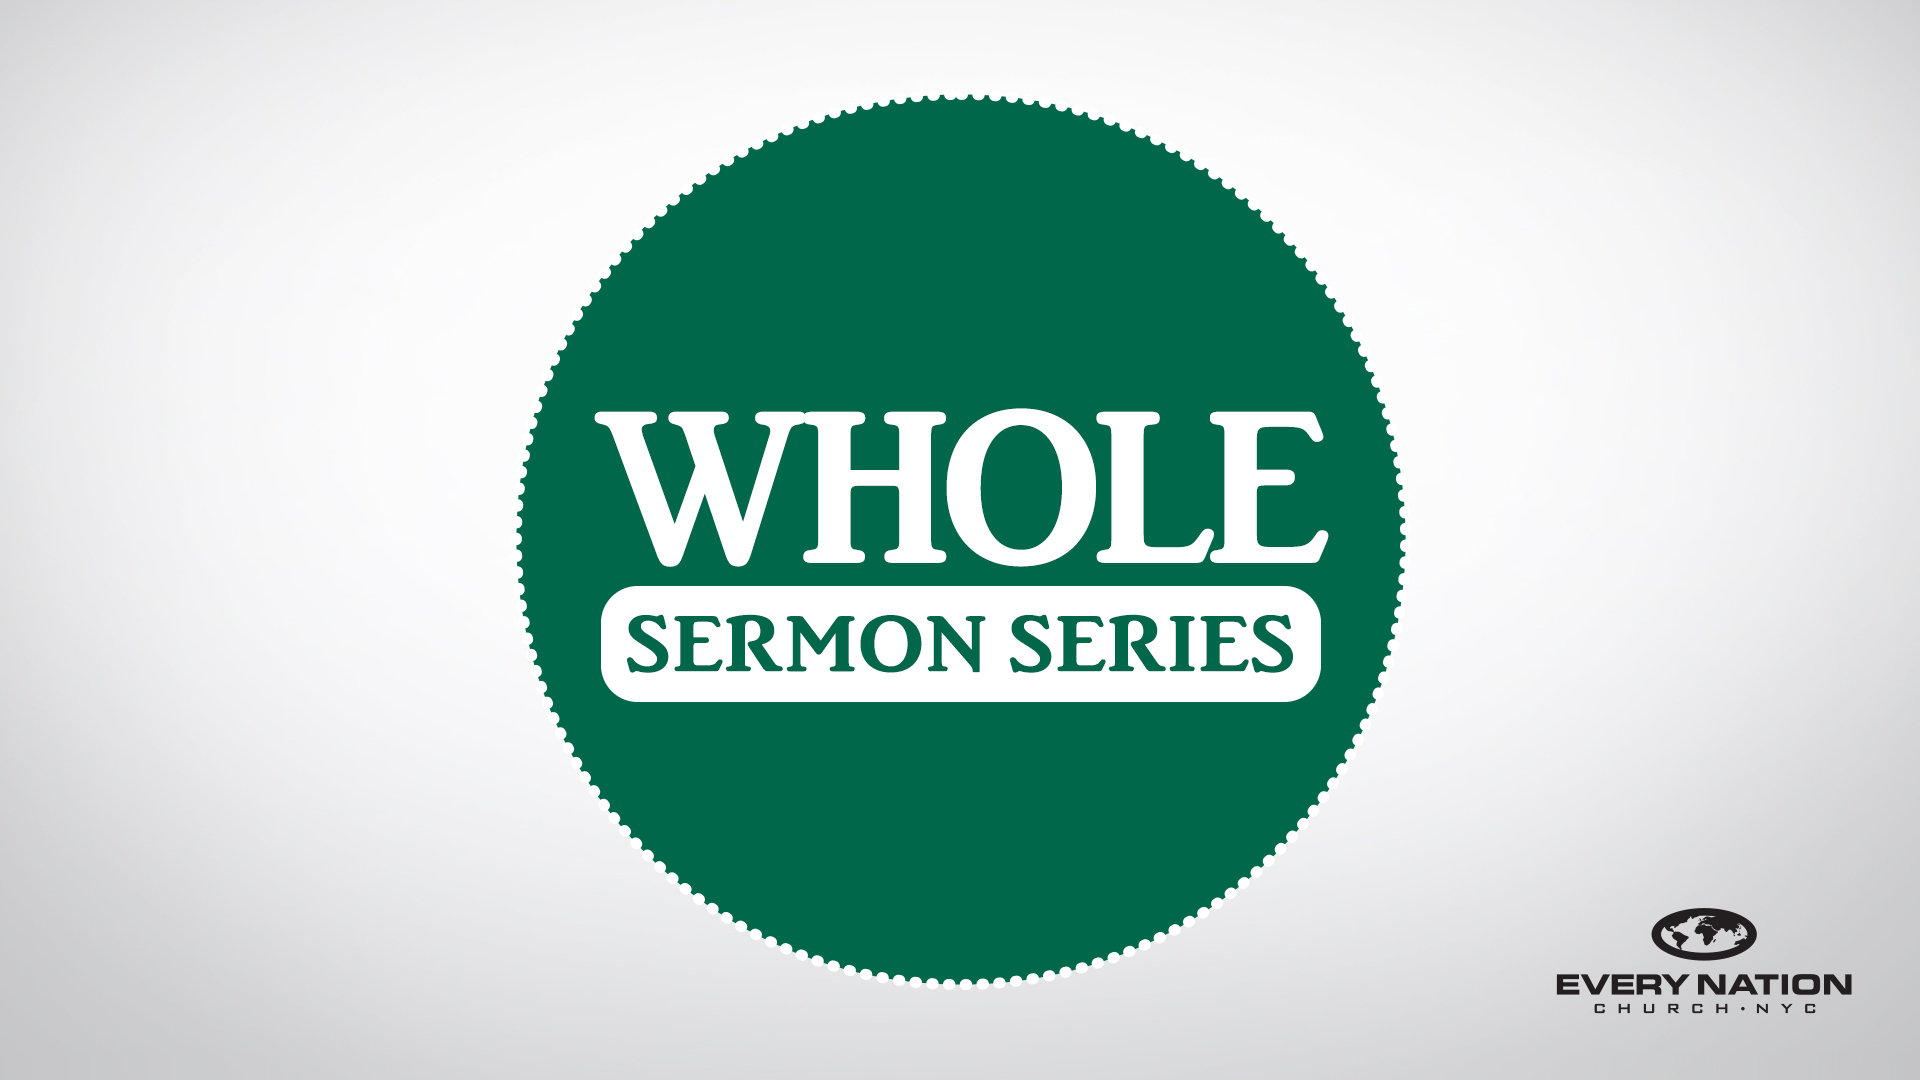 Whole Sermon Series Graphic